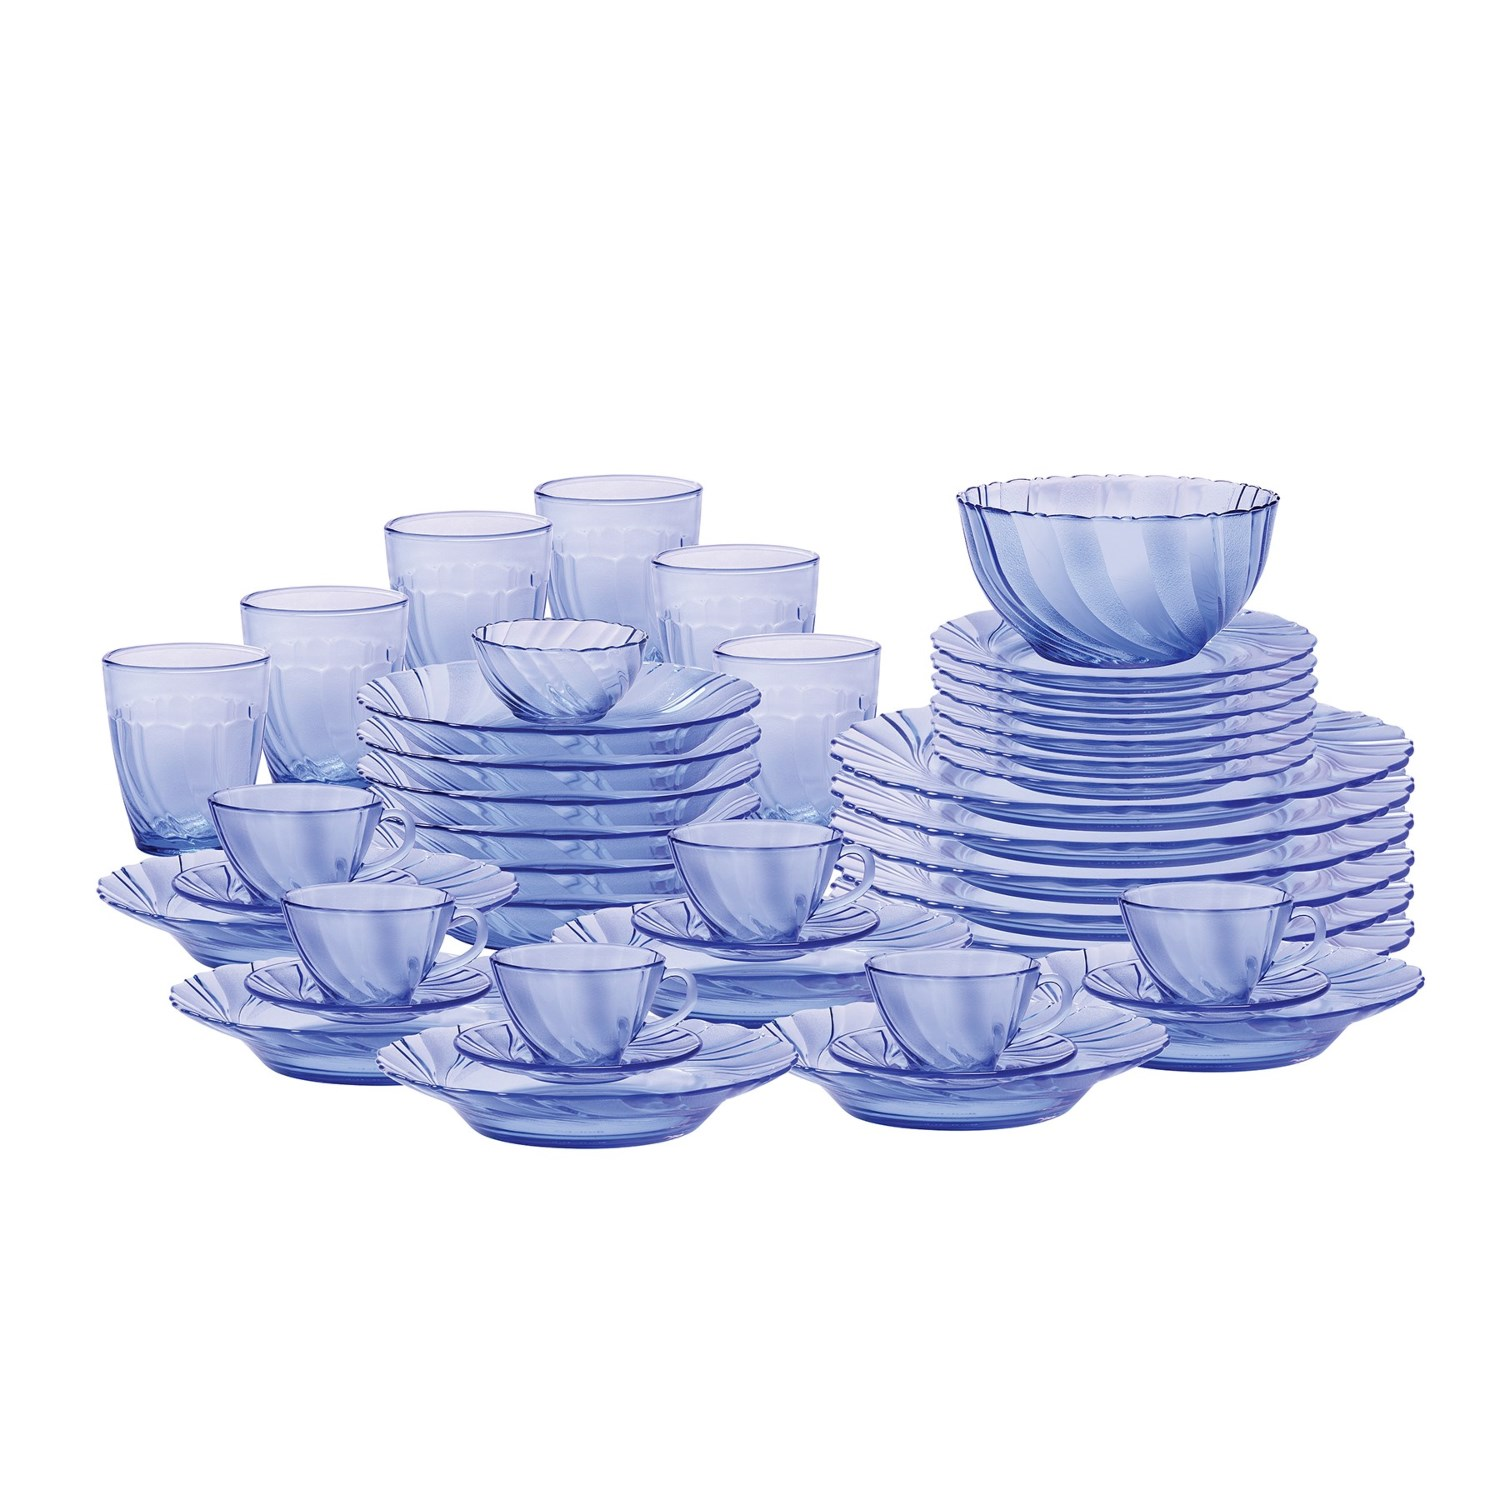 Duralex Glass Dinnerware